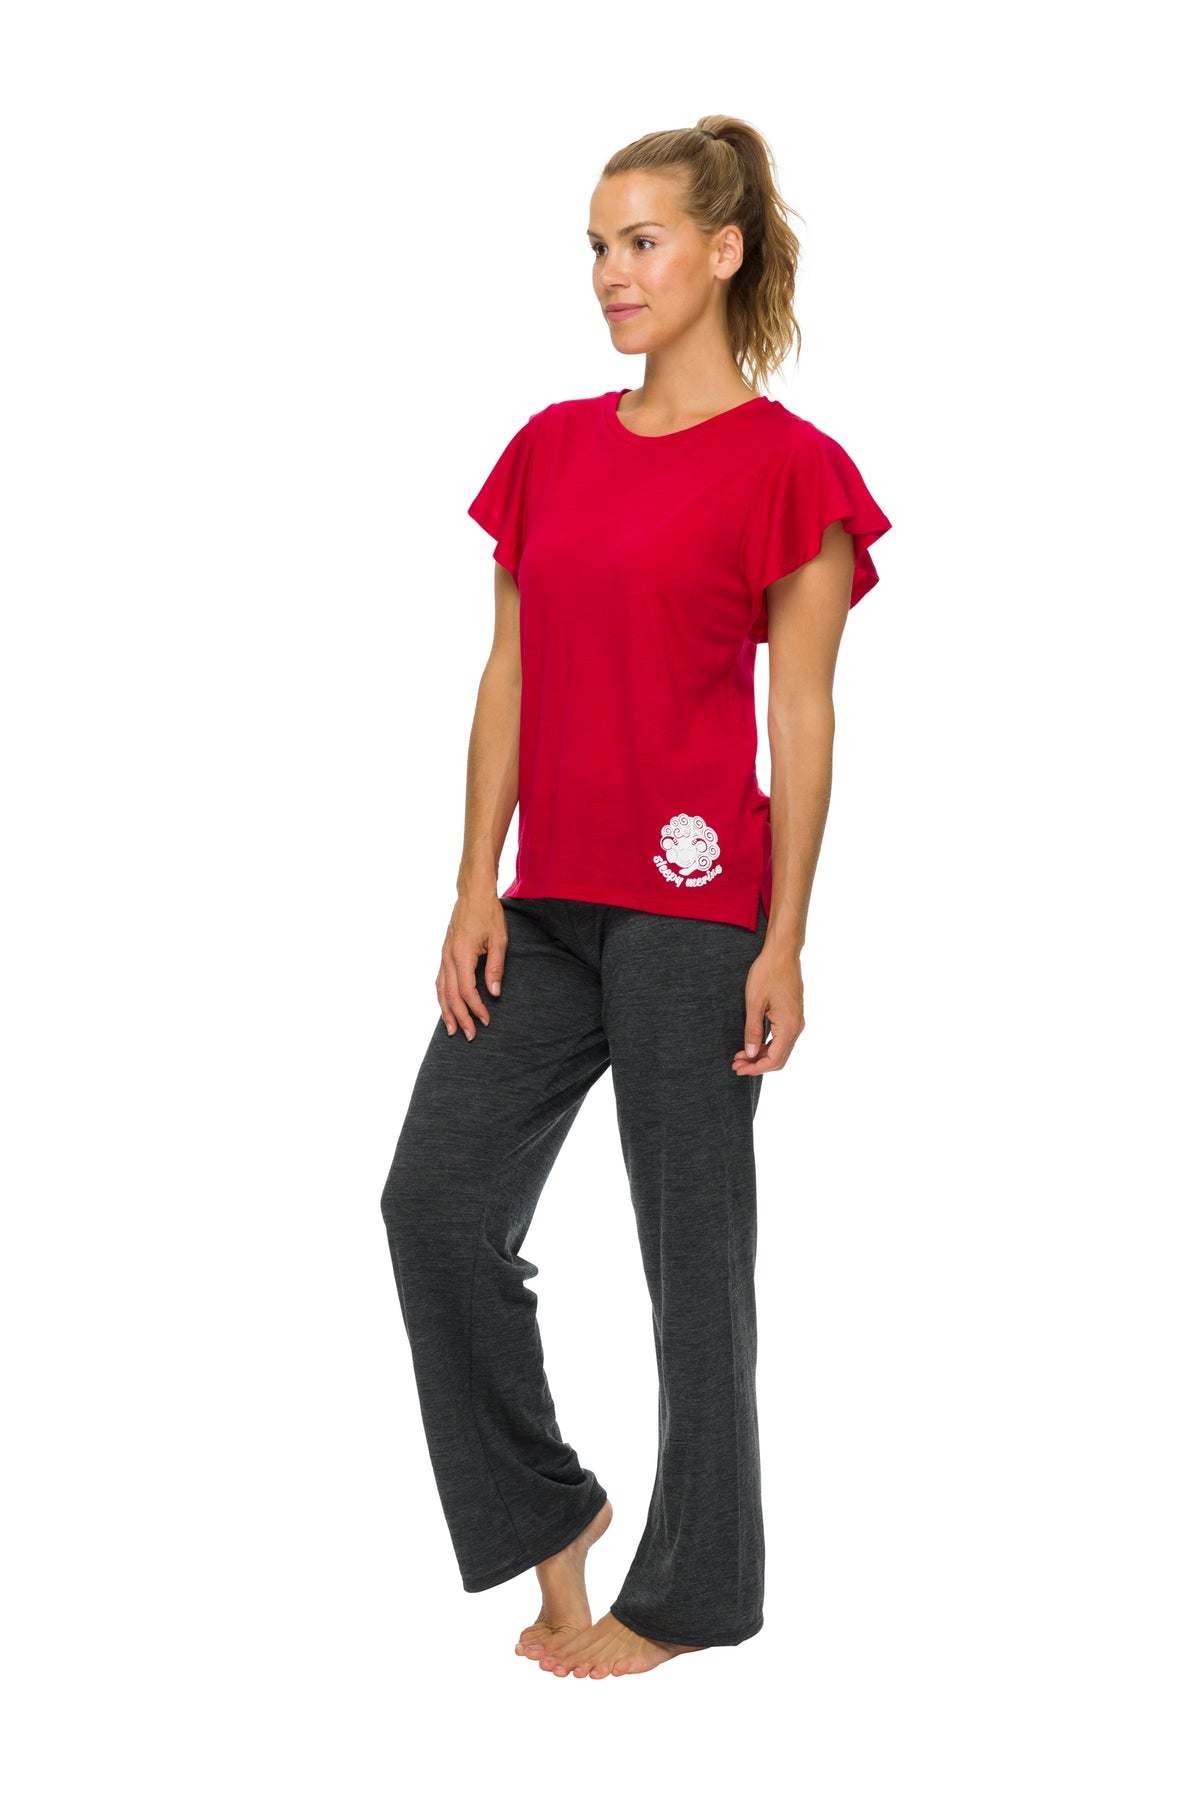 Women's Flutter Sleeve Pyjama Top | 100% Merino Wool  Blaze Red